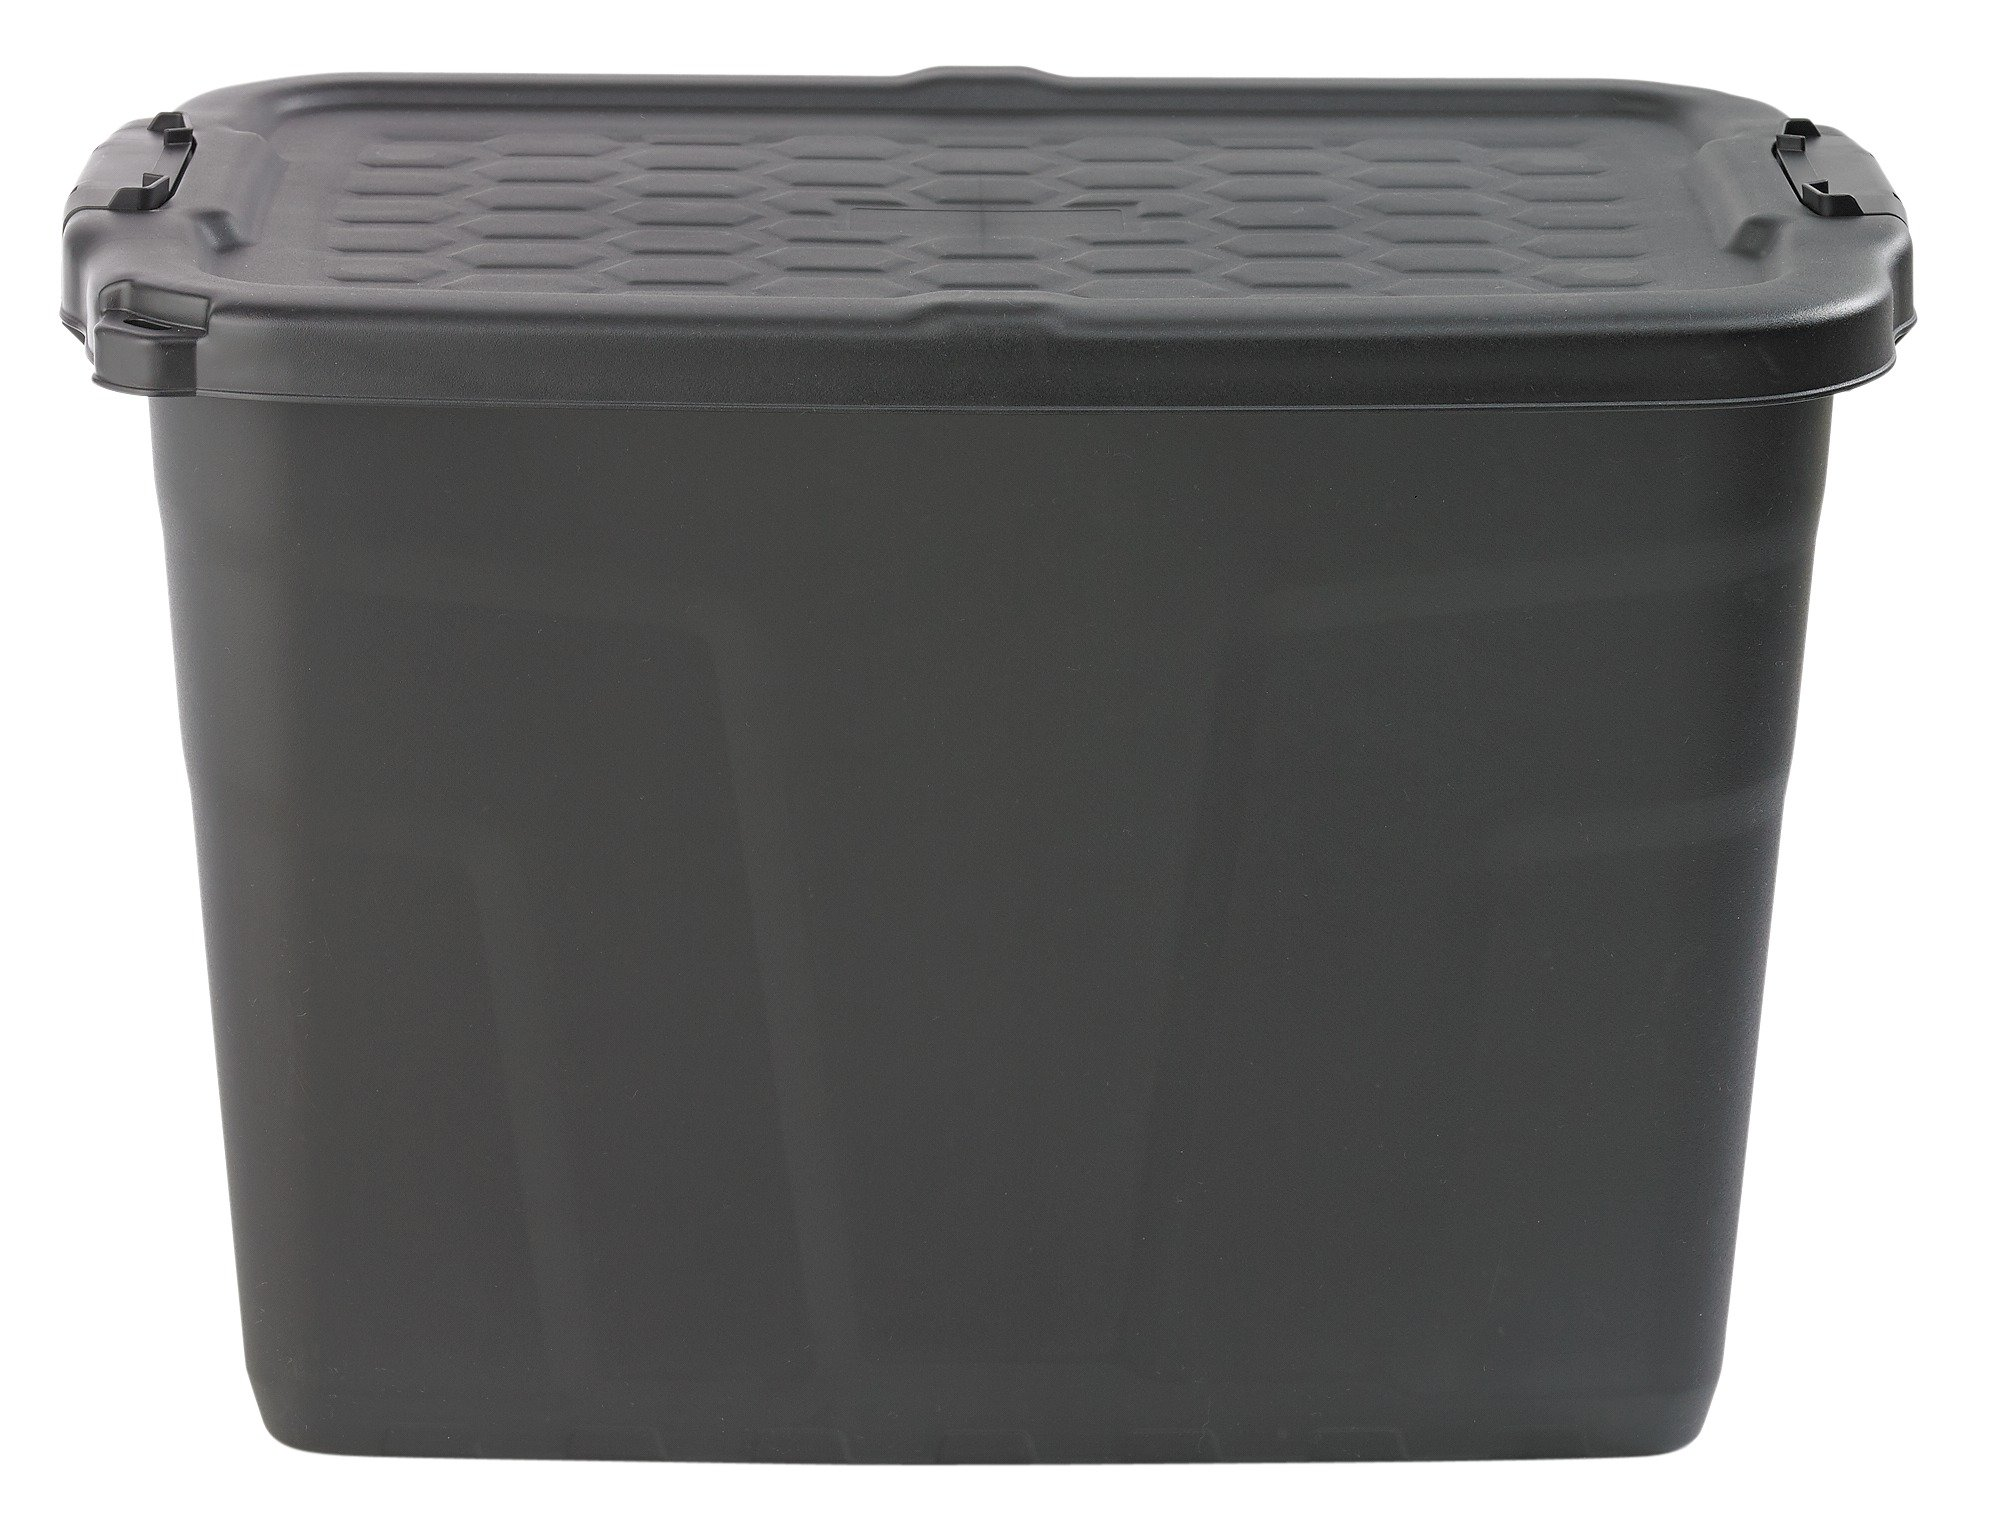 Argos - Heavyduty Garden and Shed Store Box - 60L